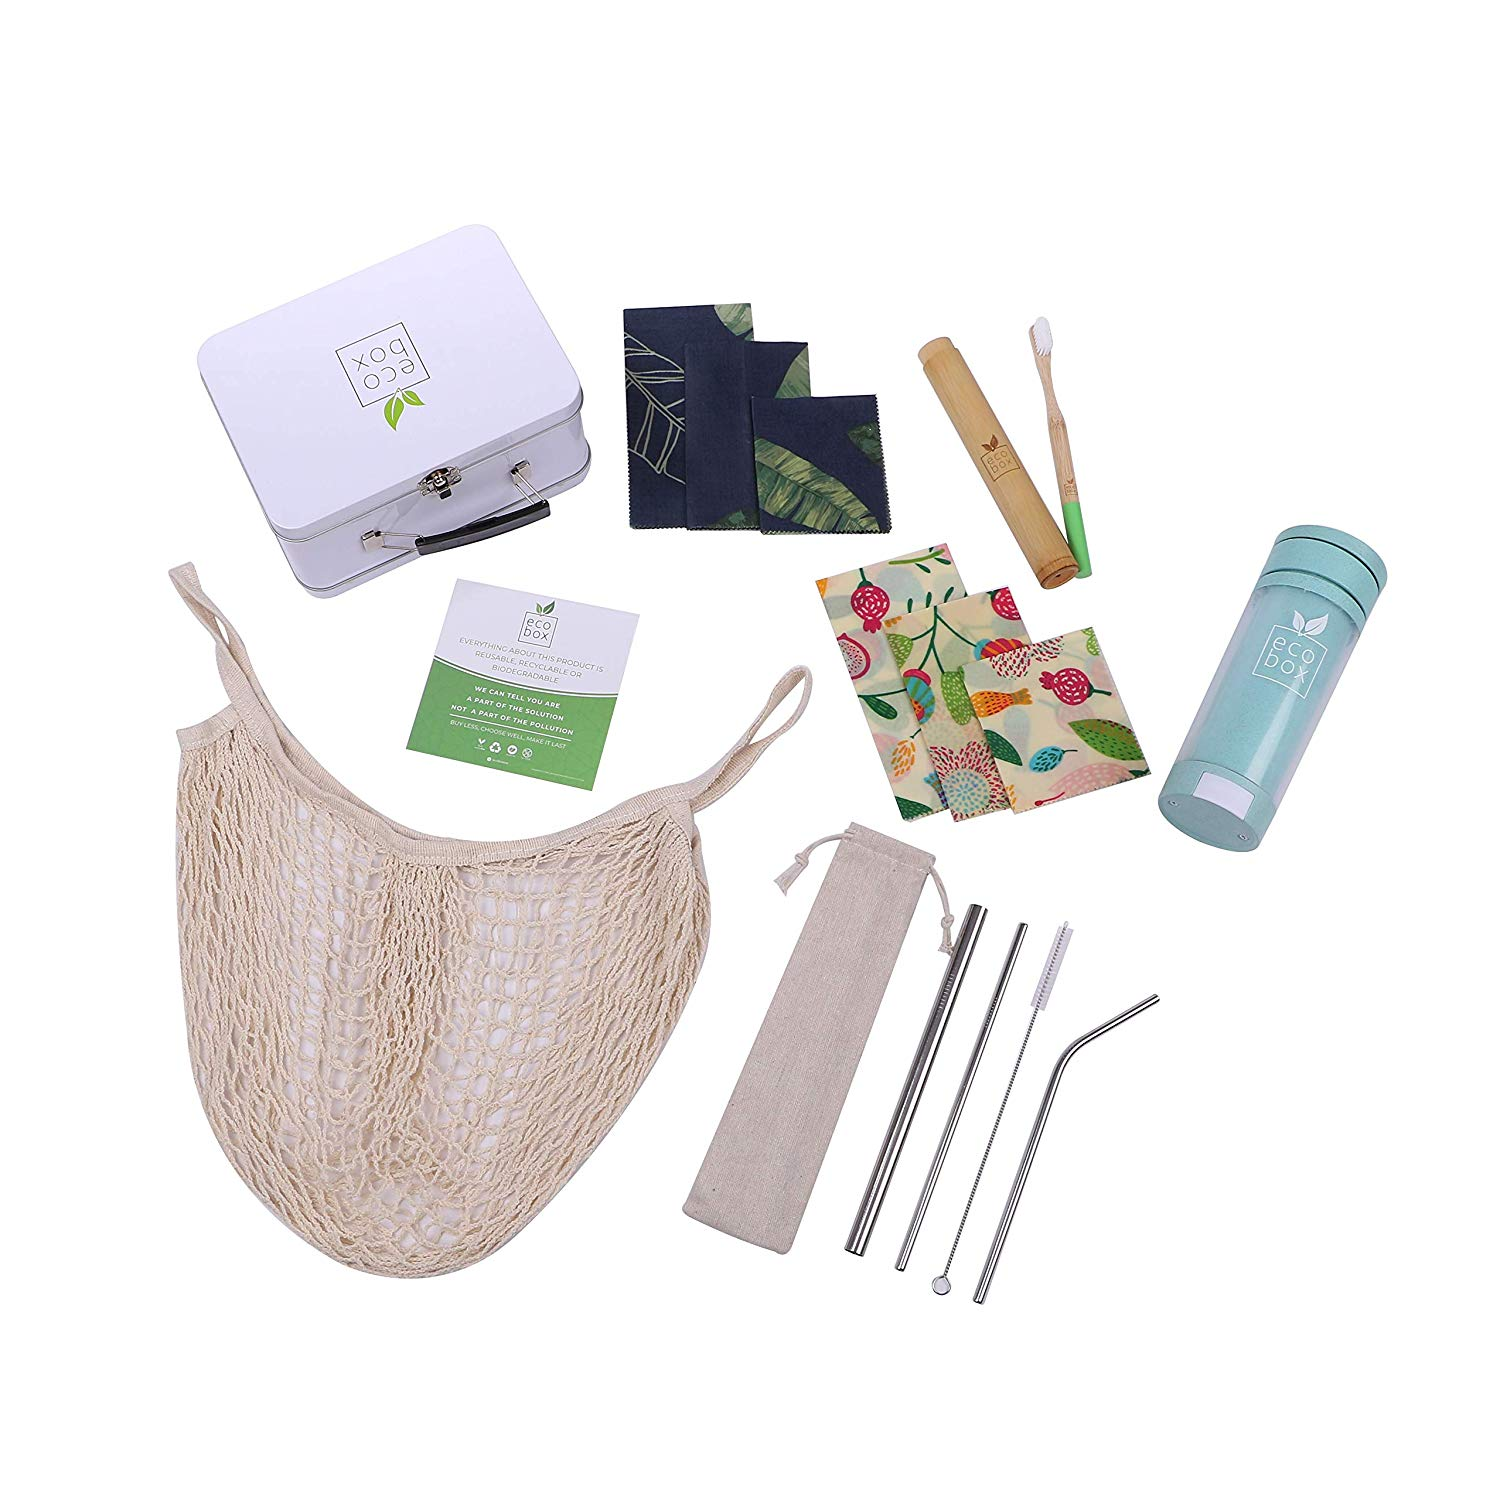 zero waste starter kit contents